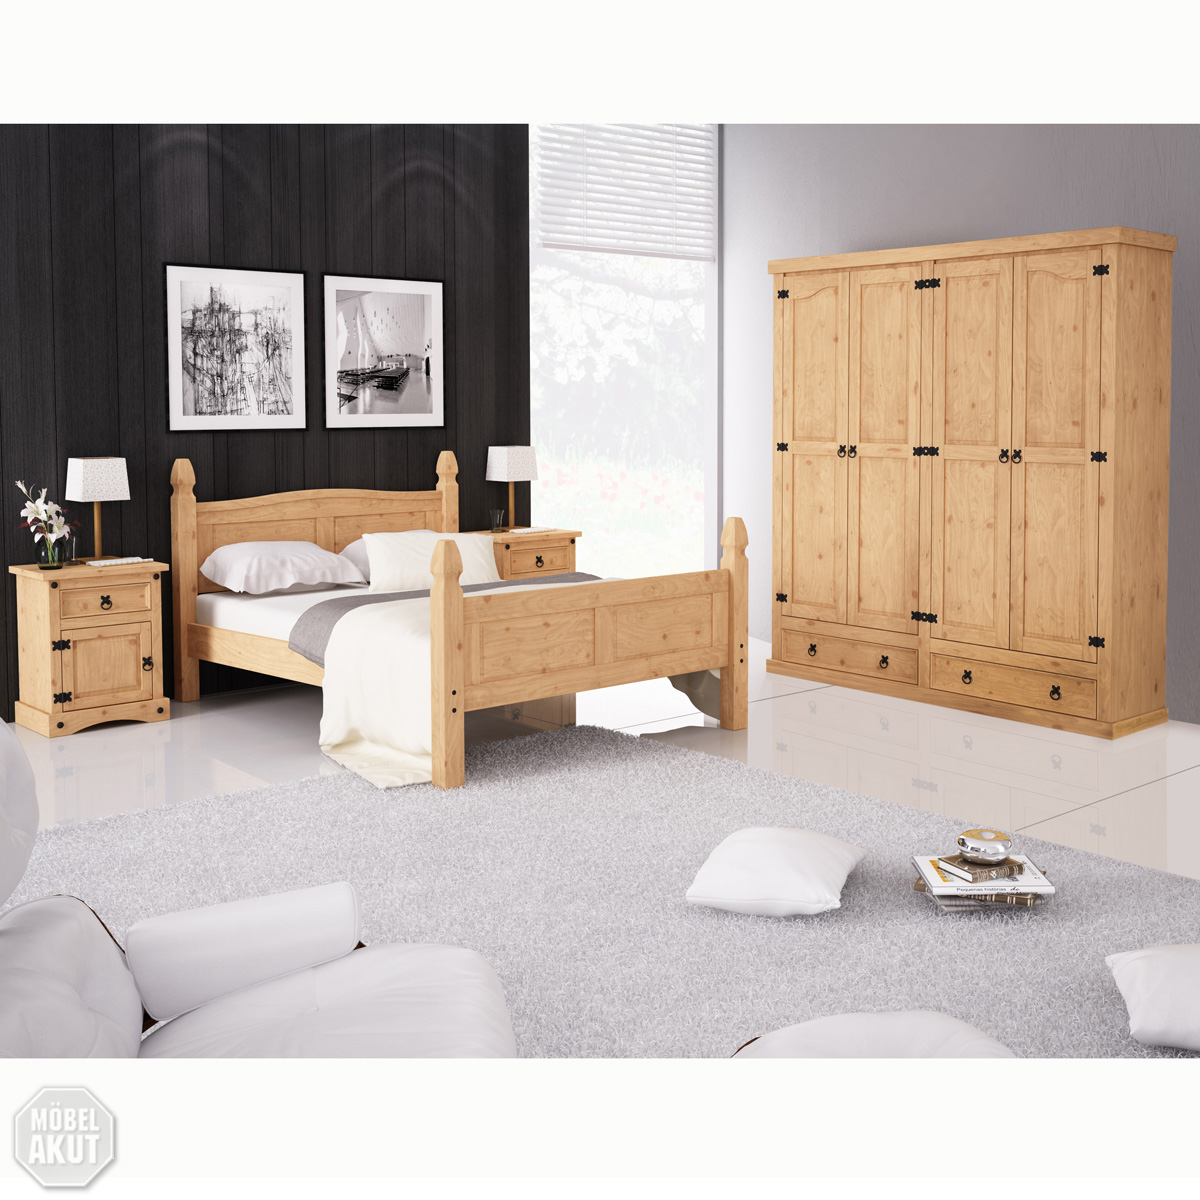 4 tlg schlafzimmerset pedro ii schlafzimmer schrank. Black Bedroom Furniture Sets. Home Design Ideas